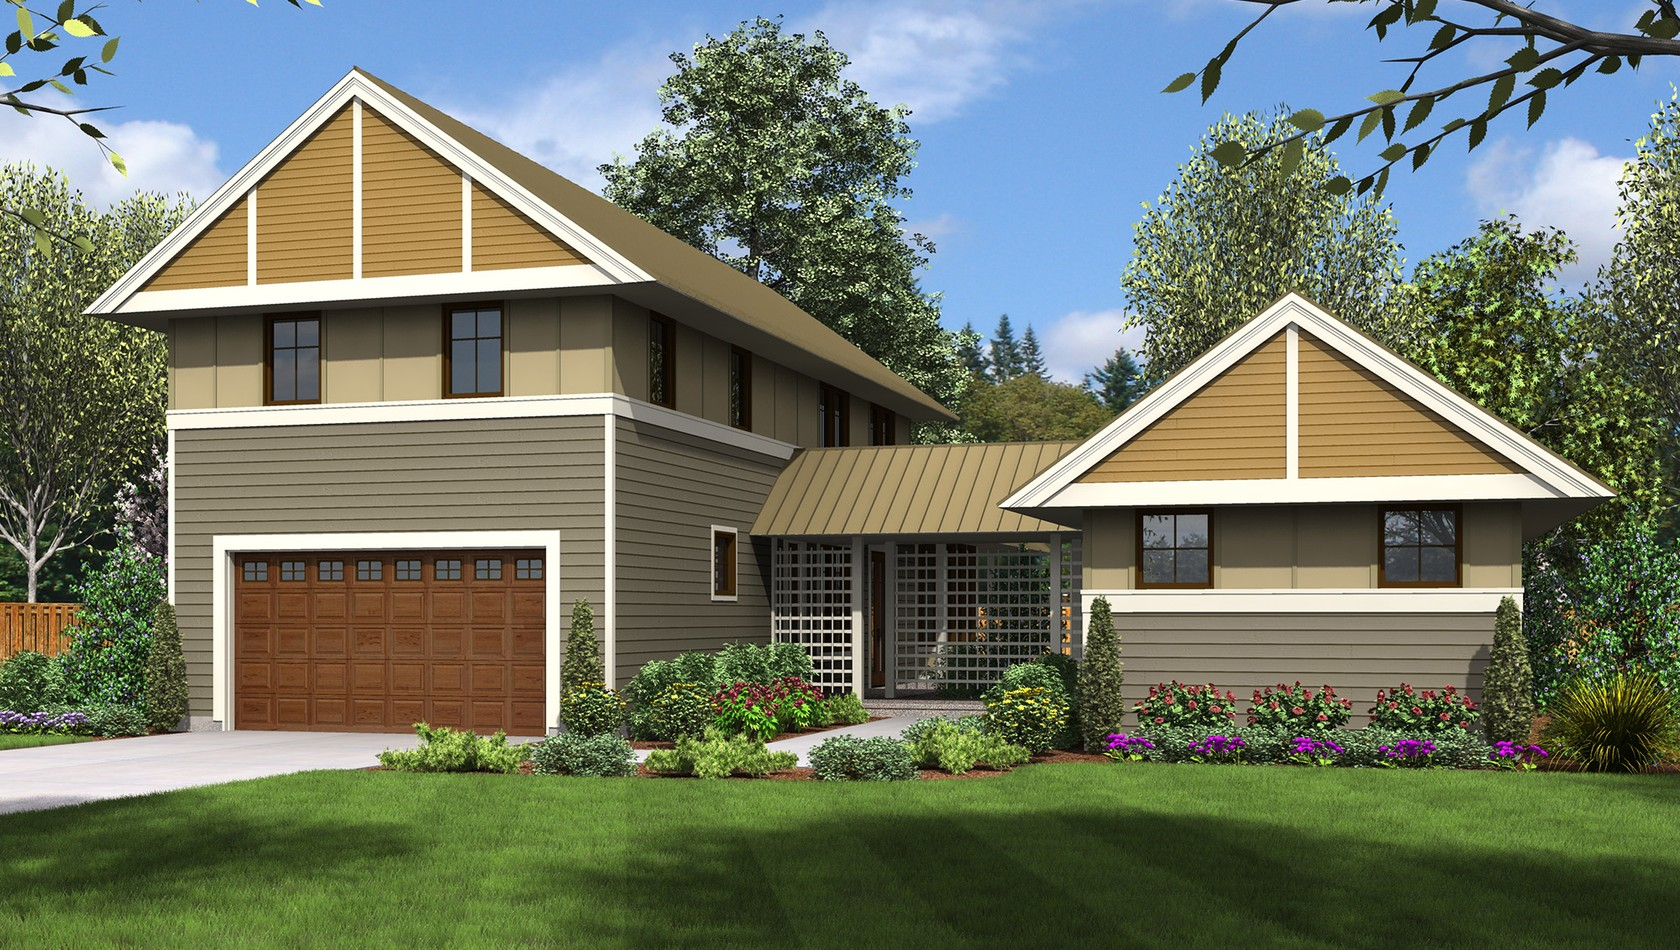 Main image for house plan 22196: The Summerset